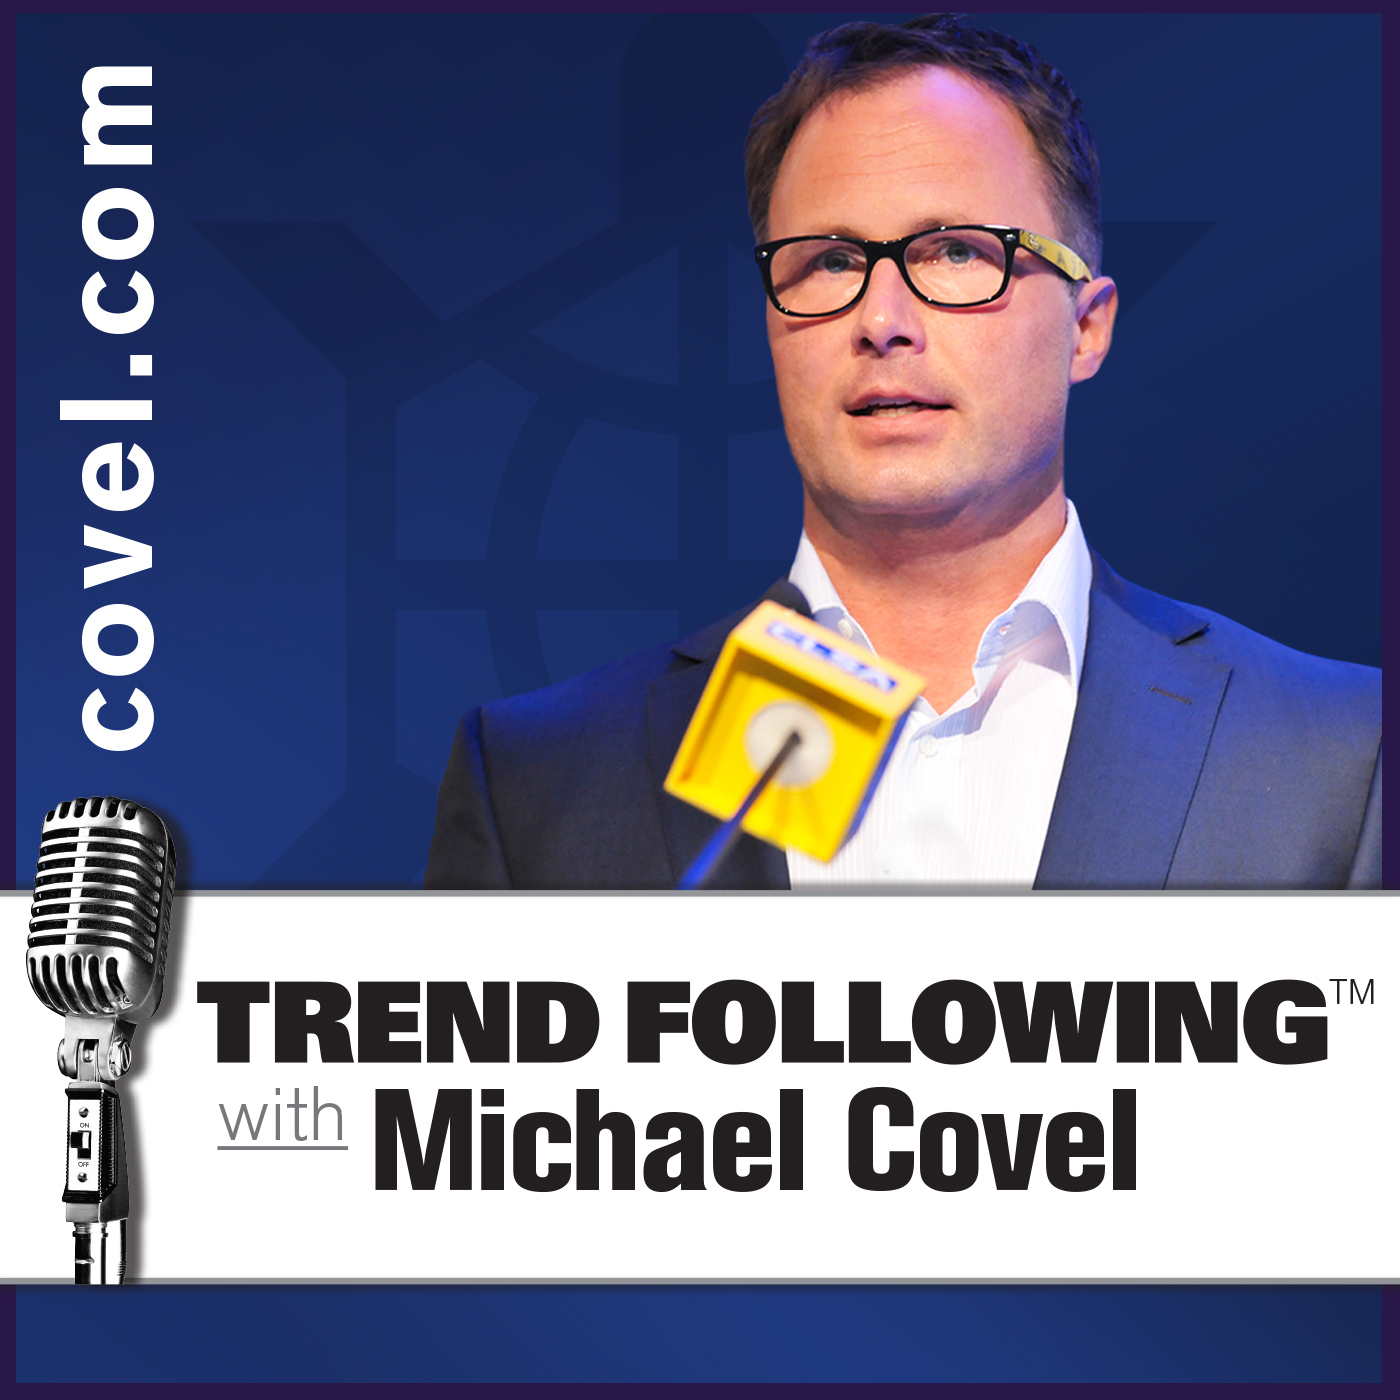 Ep. 519: Another Mega Trend Following Episode with Michael Covel on Trend Following Episode